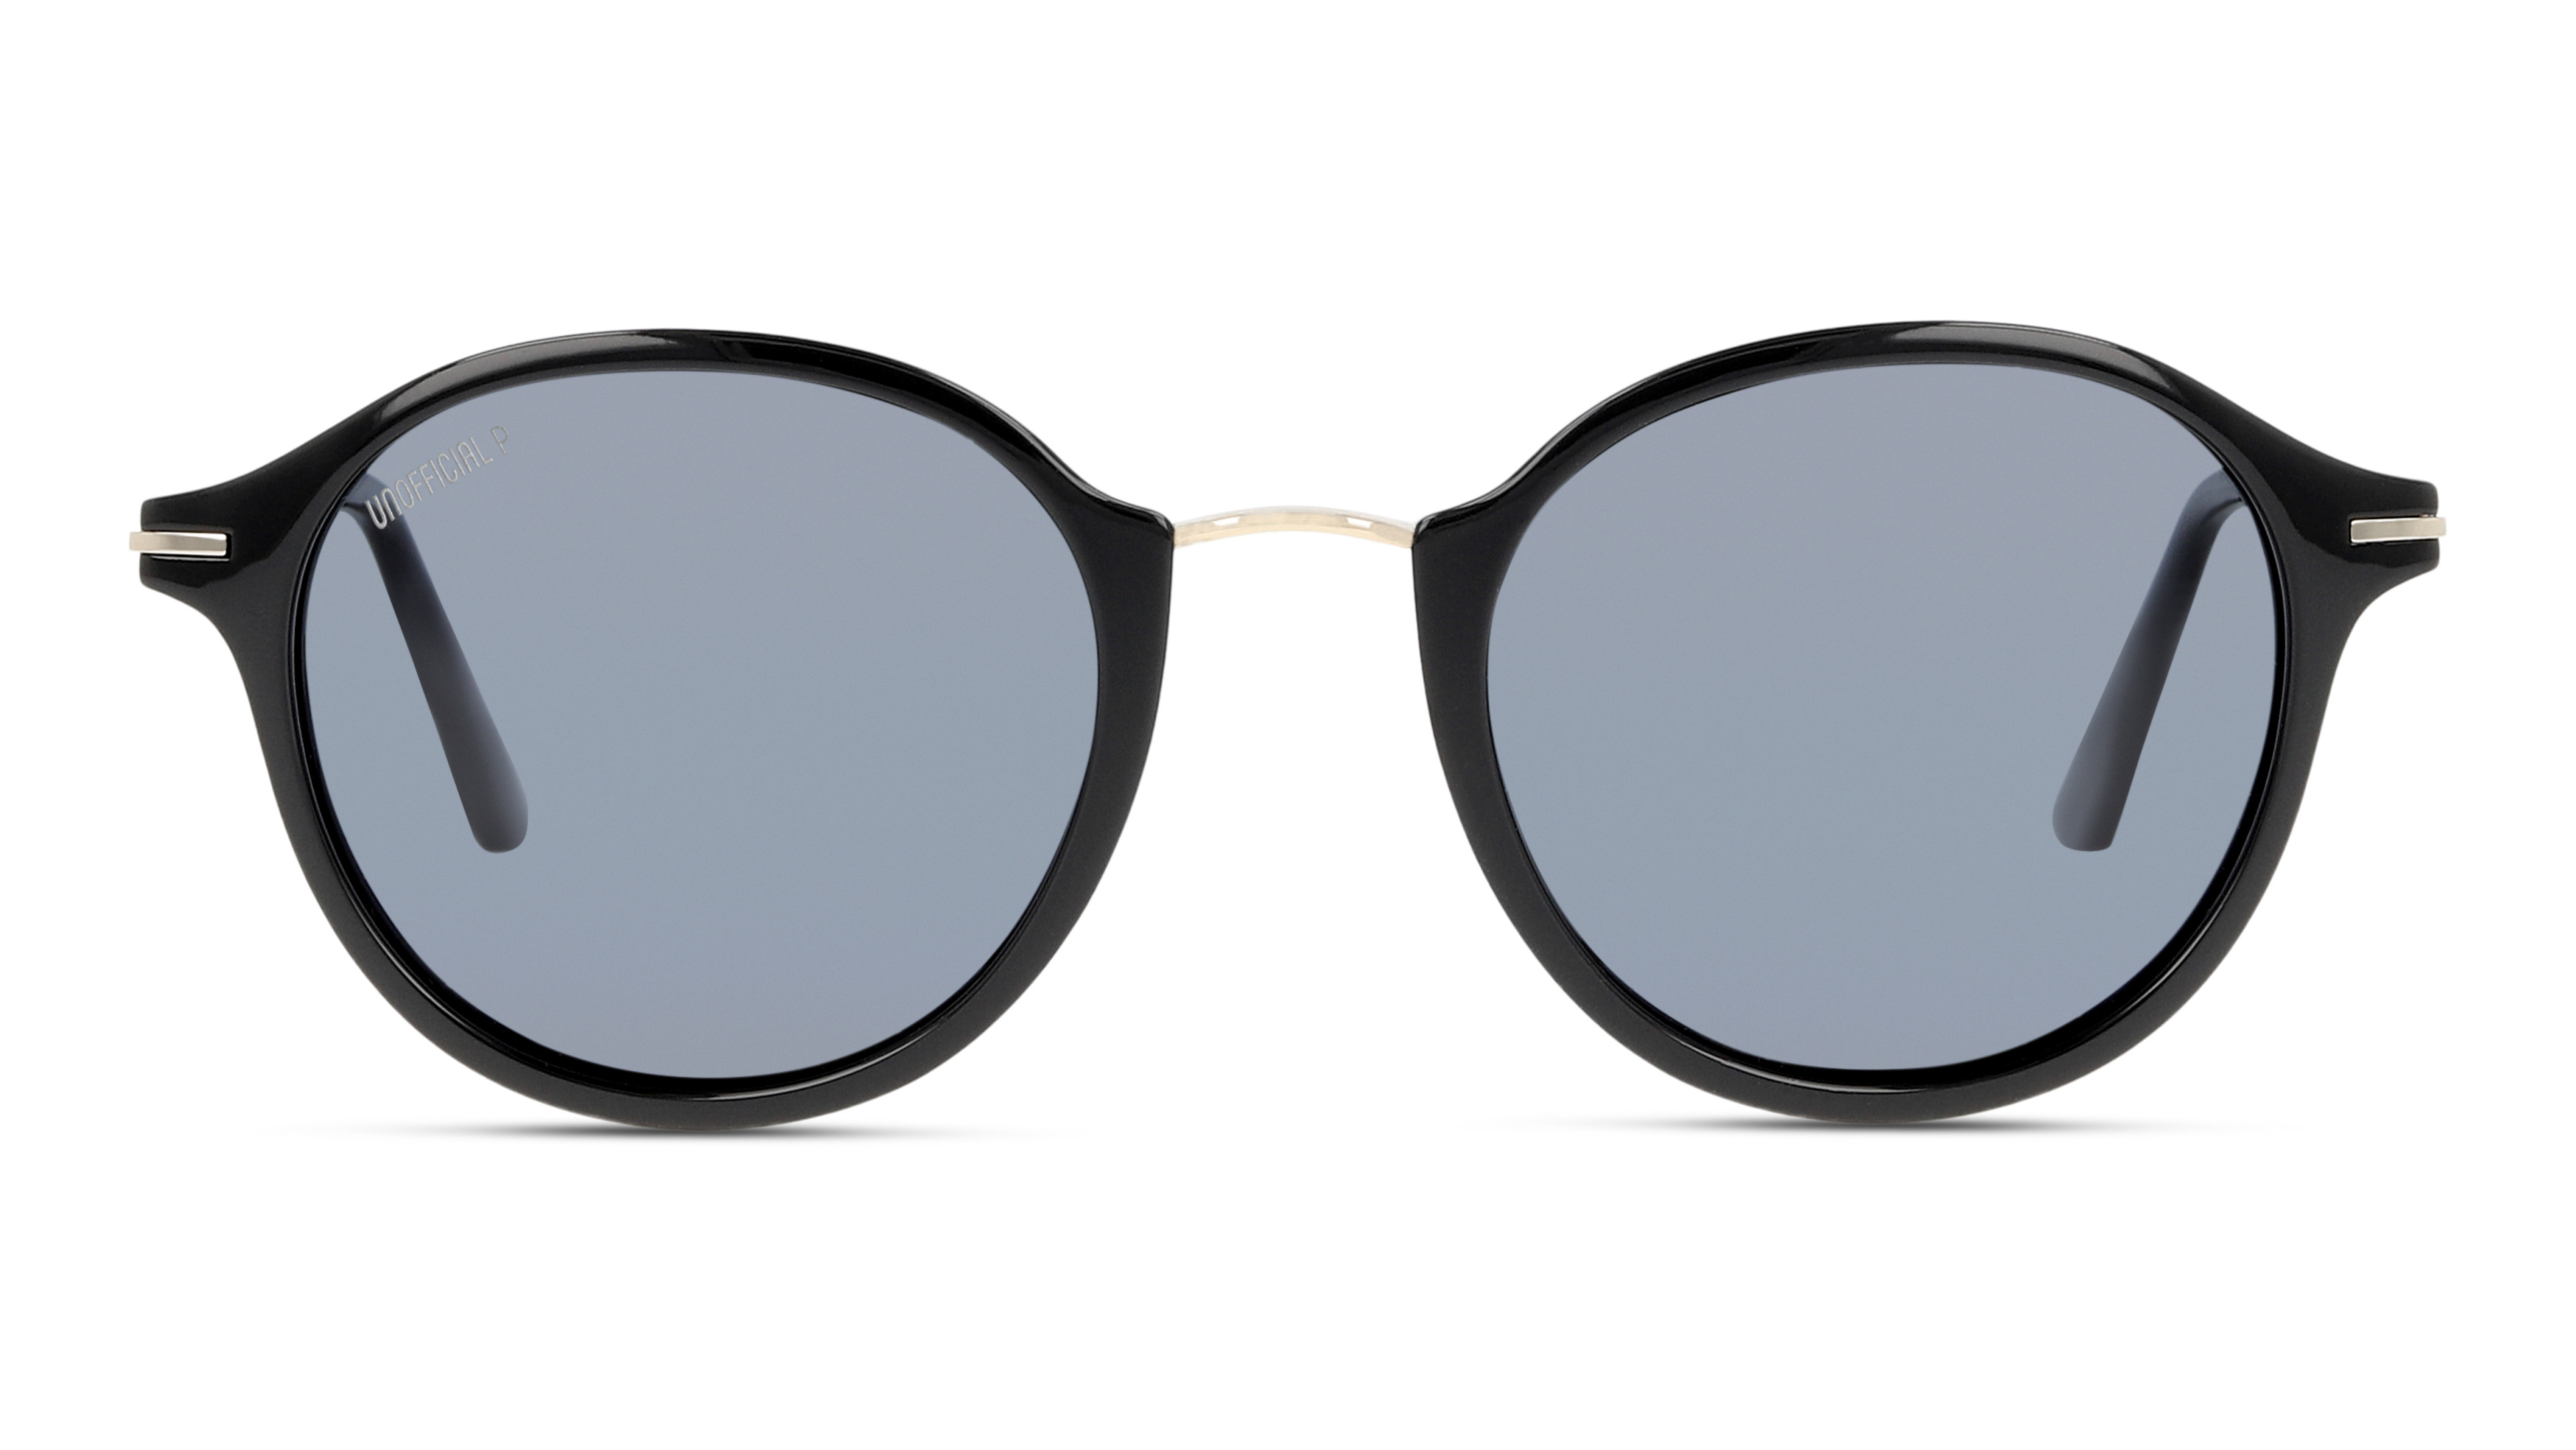 8719154740978-front-01-unofficial-unsf0009p-eyewear-black-gold